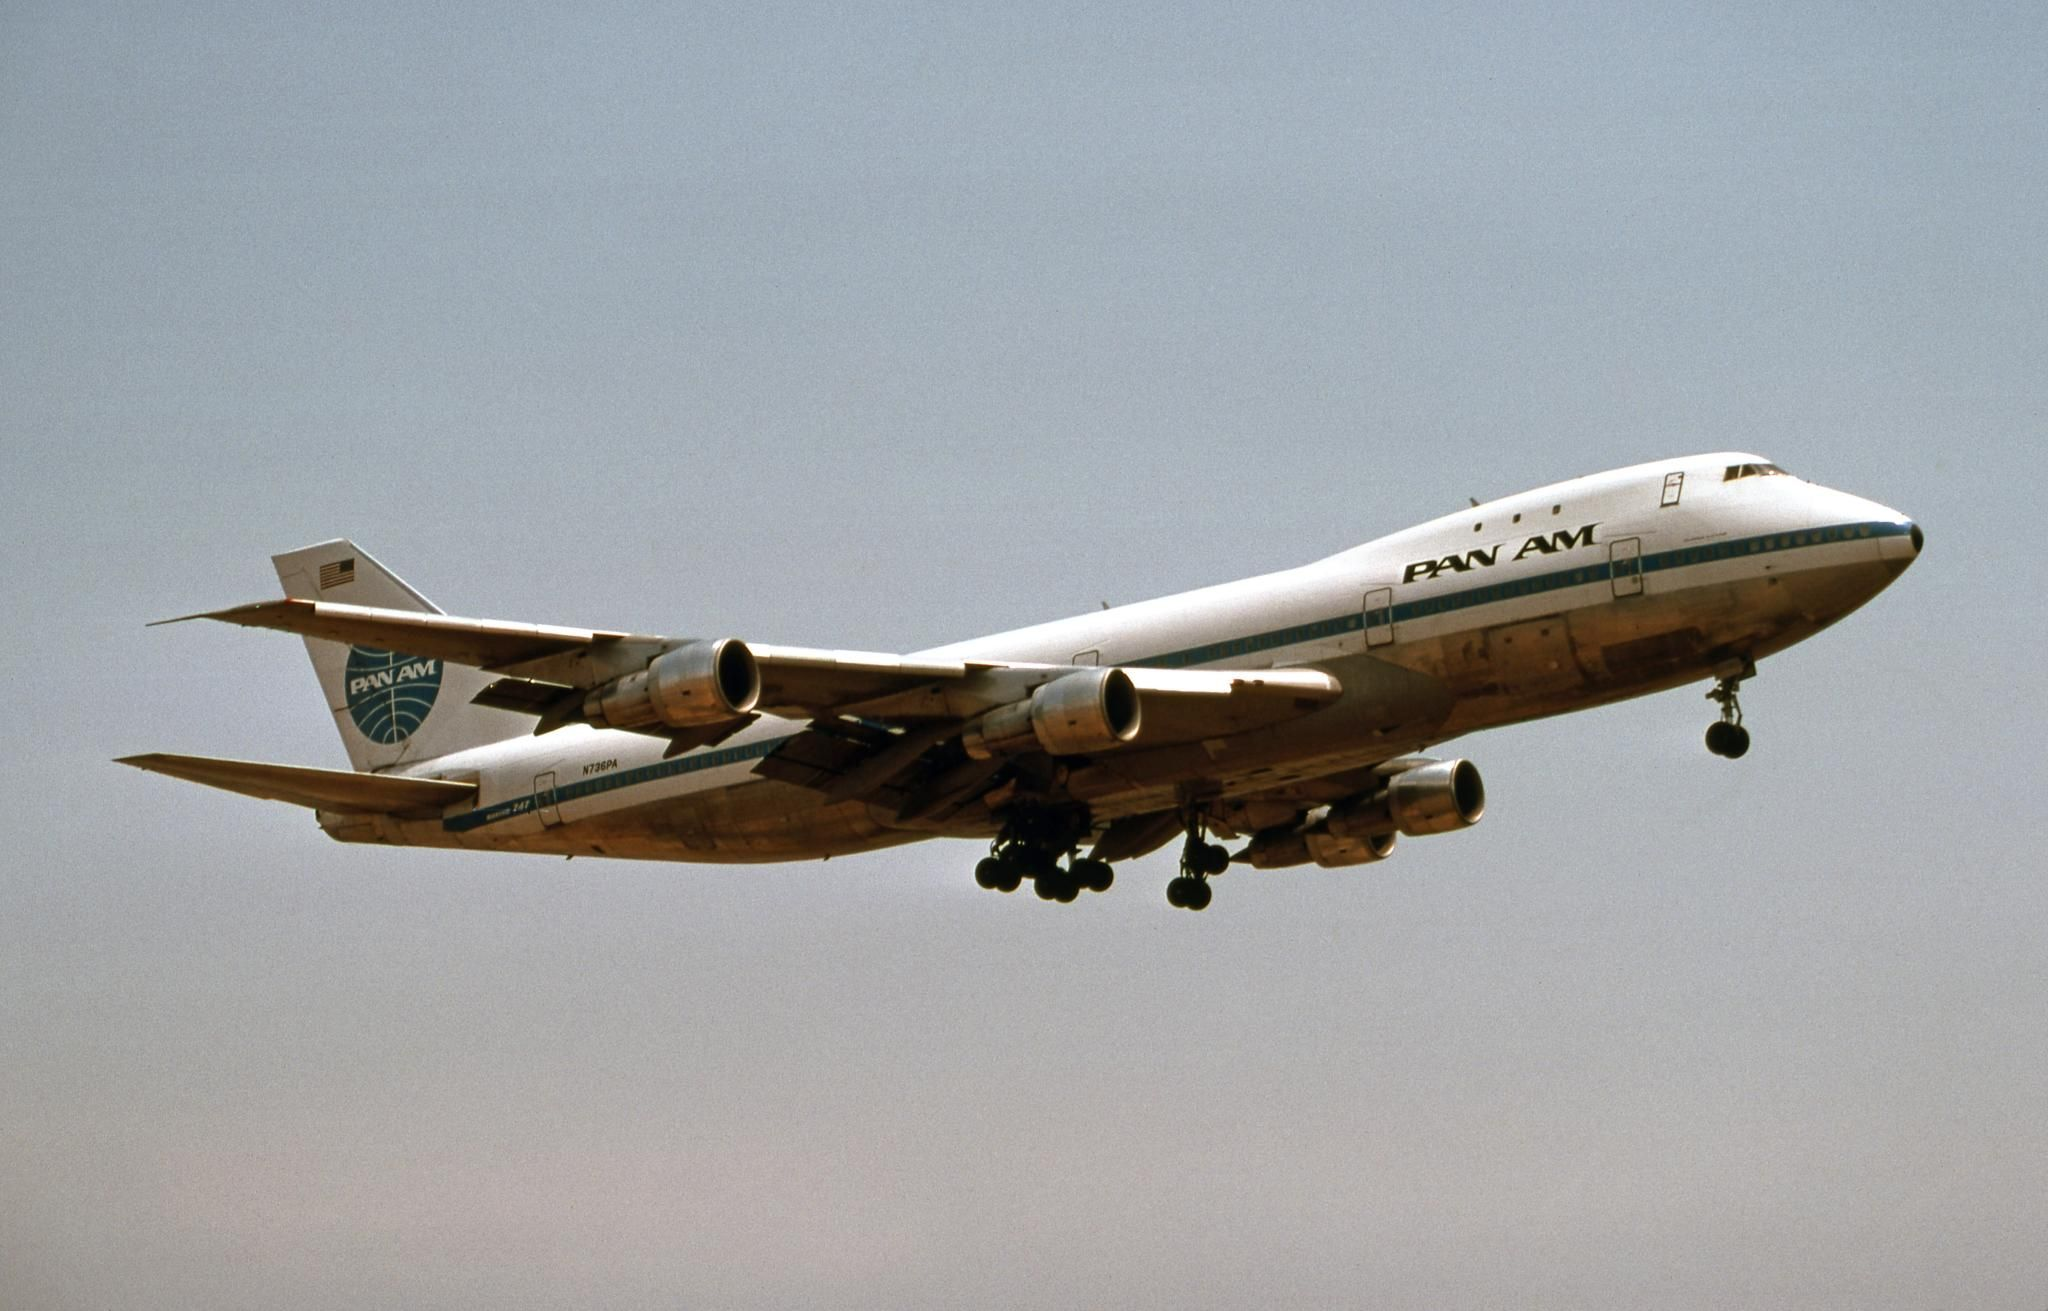 Pan Am Boeing 747 N736PA Clipper Victor and also named Clipper Young  America at one point (11th 747 ever built). Made the first commercial  passenger flight ...